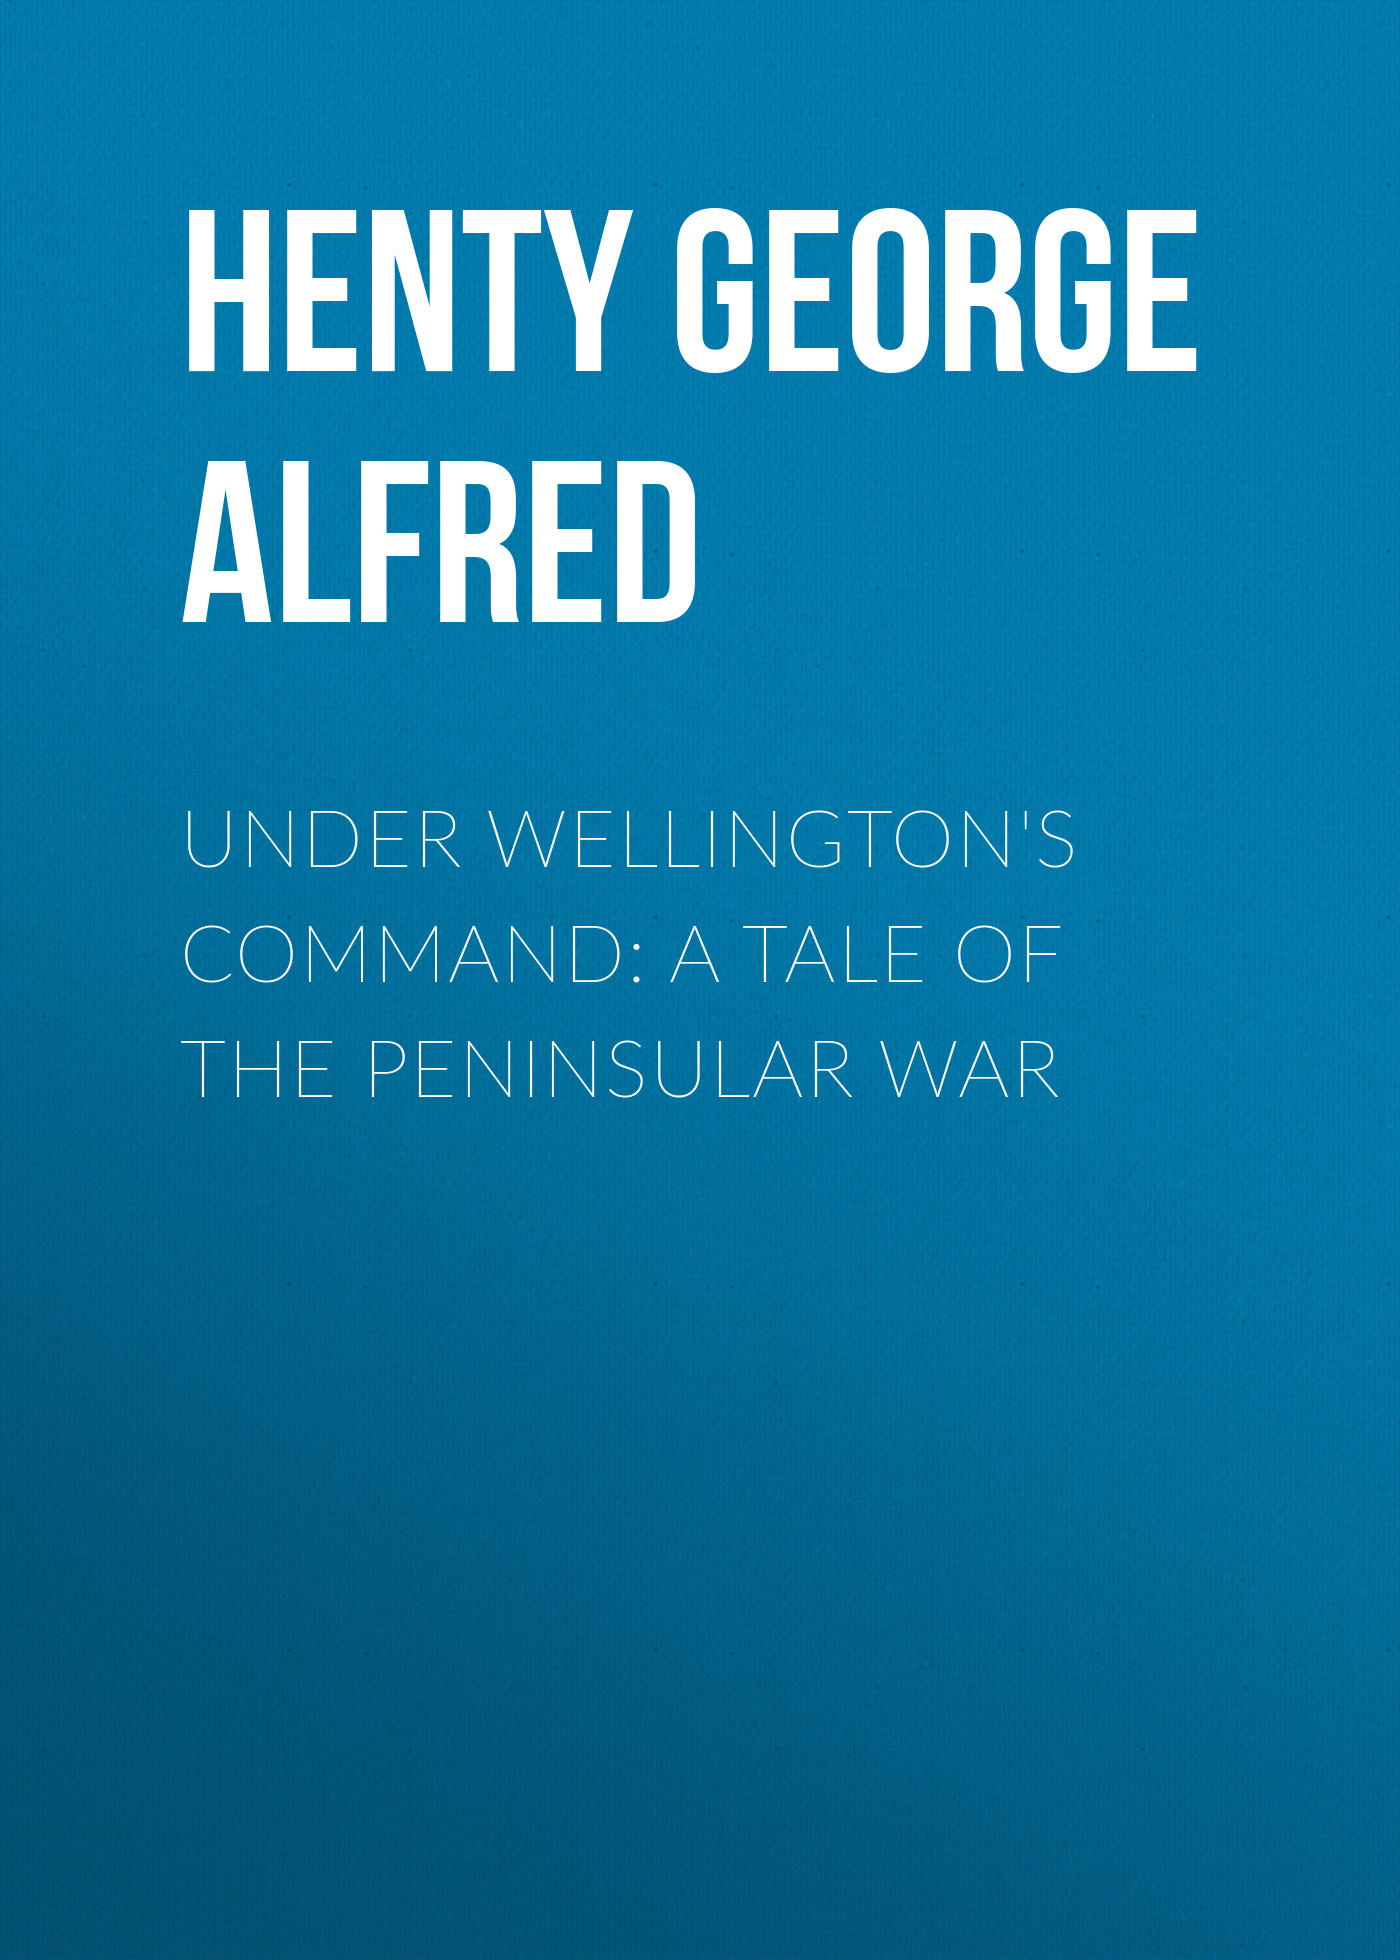 Henty George Alfred Under Wellington's Command: A Tale of the Peninsular War kirk mcelhearn the mac os x command line unix under the hood